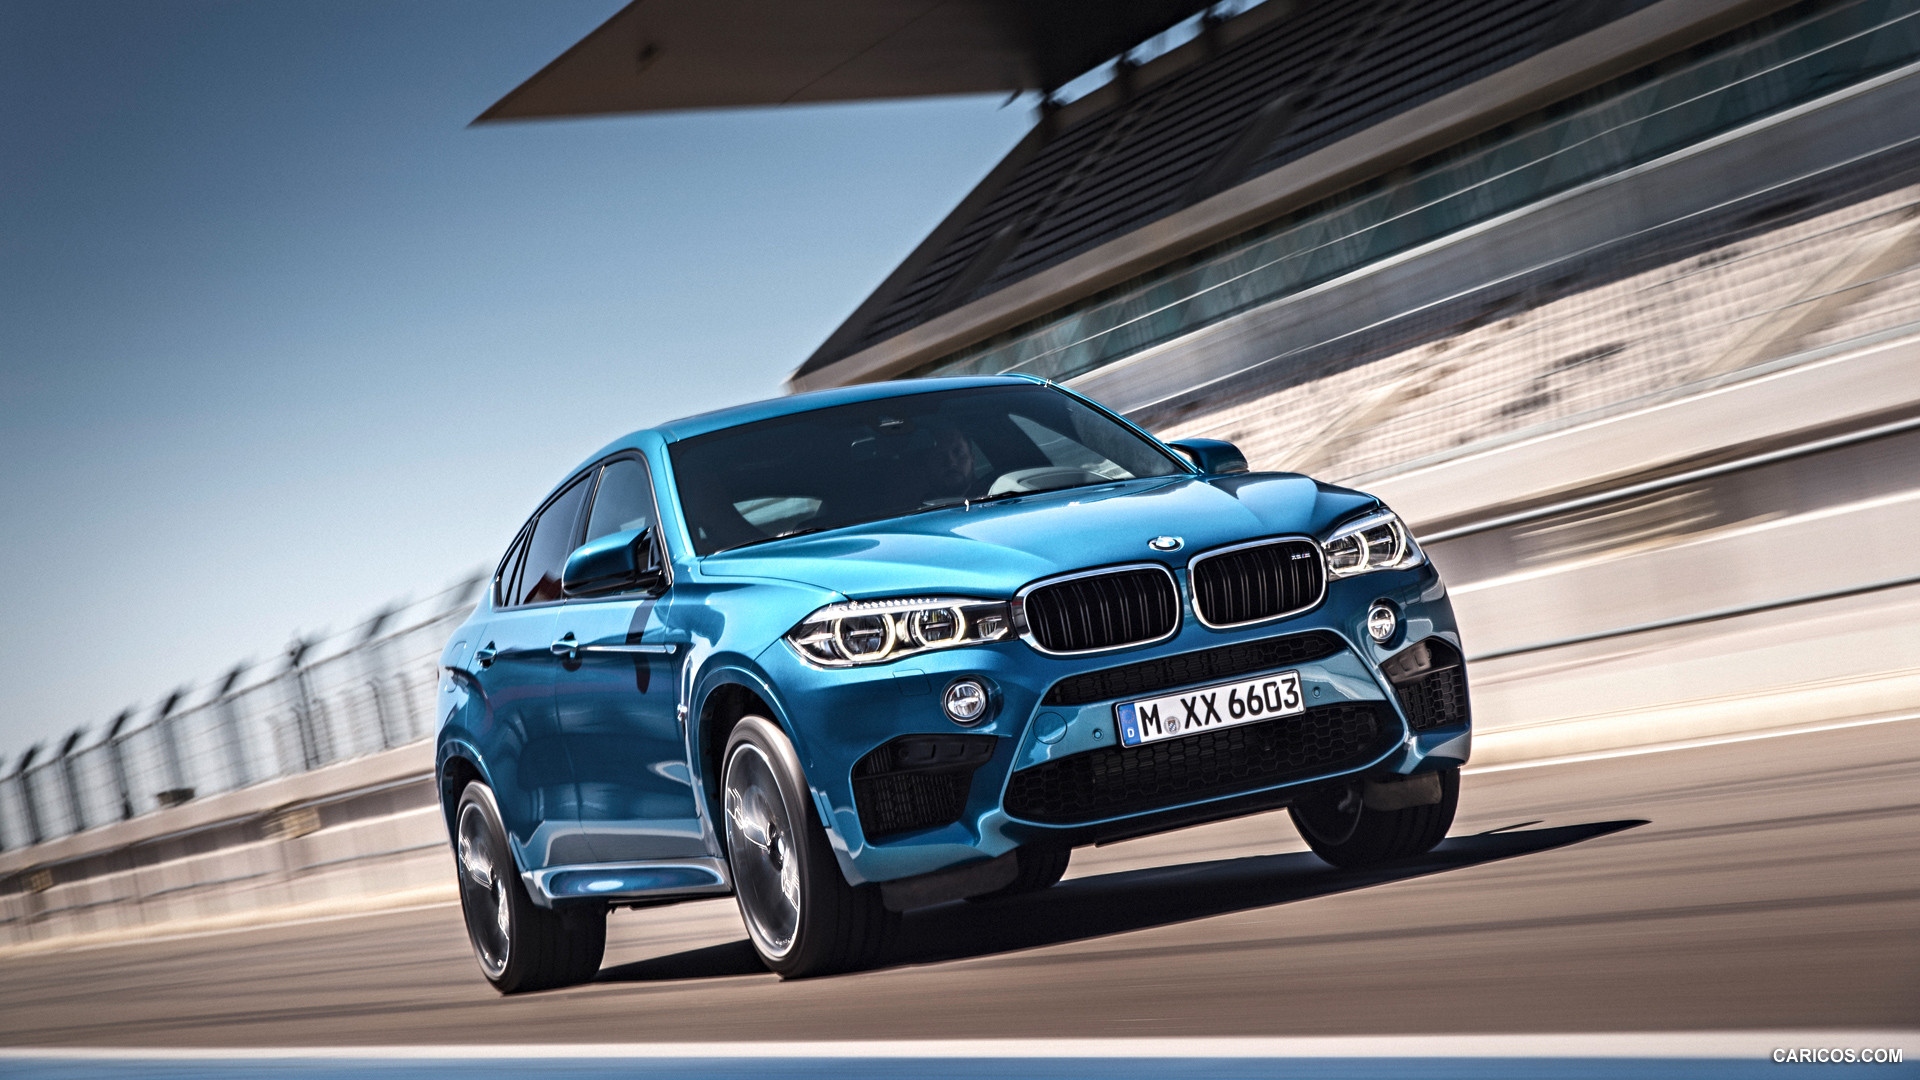 1920x1080 - BMW X6 Wallpapers 12